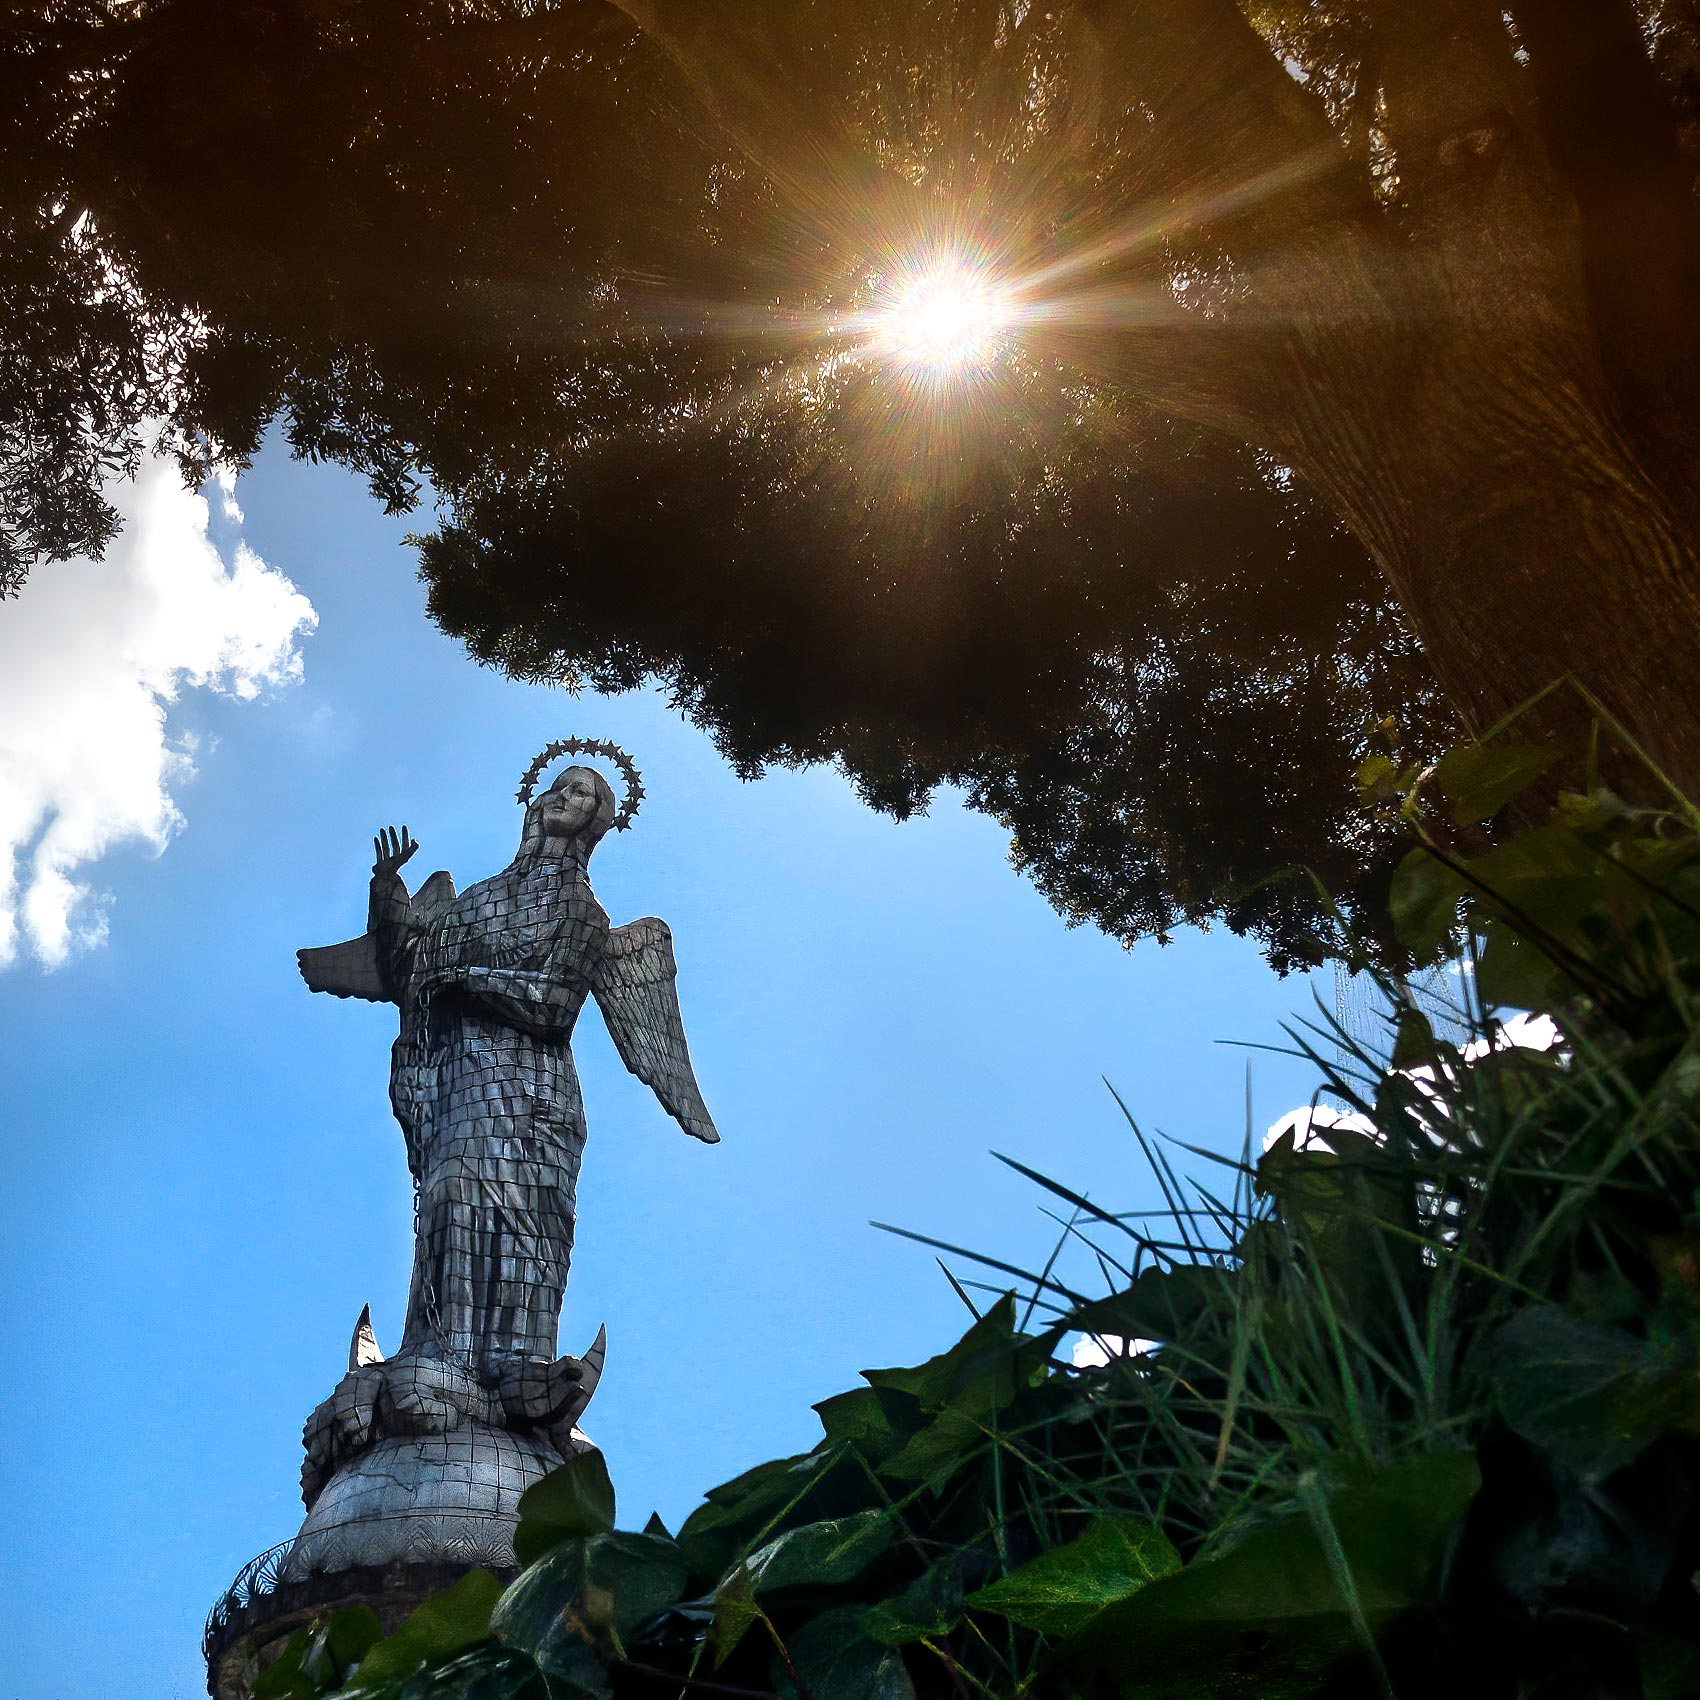 unique-photo-of-the-virgin-of-quito-statue-at-sunset-by-toronto-travel-photographer